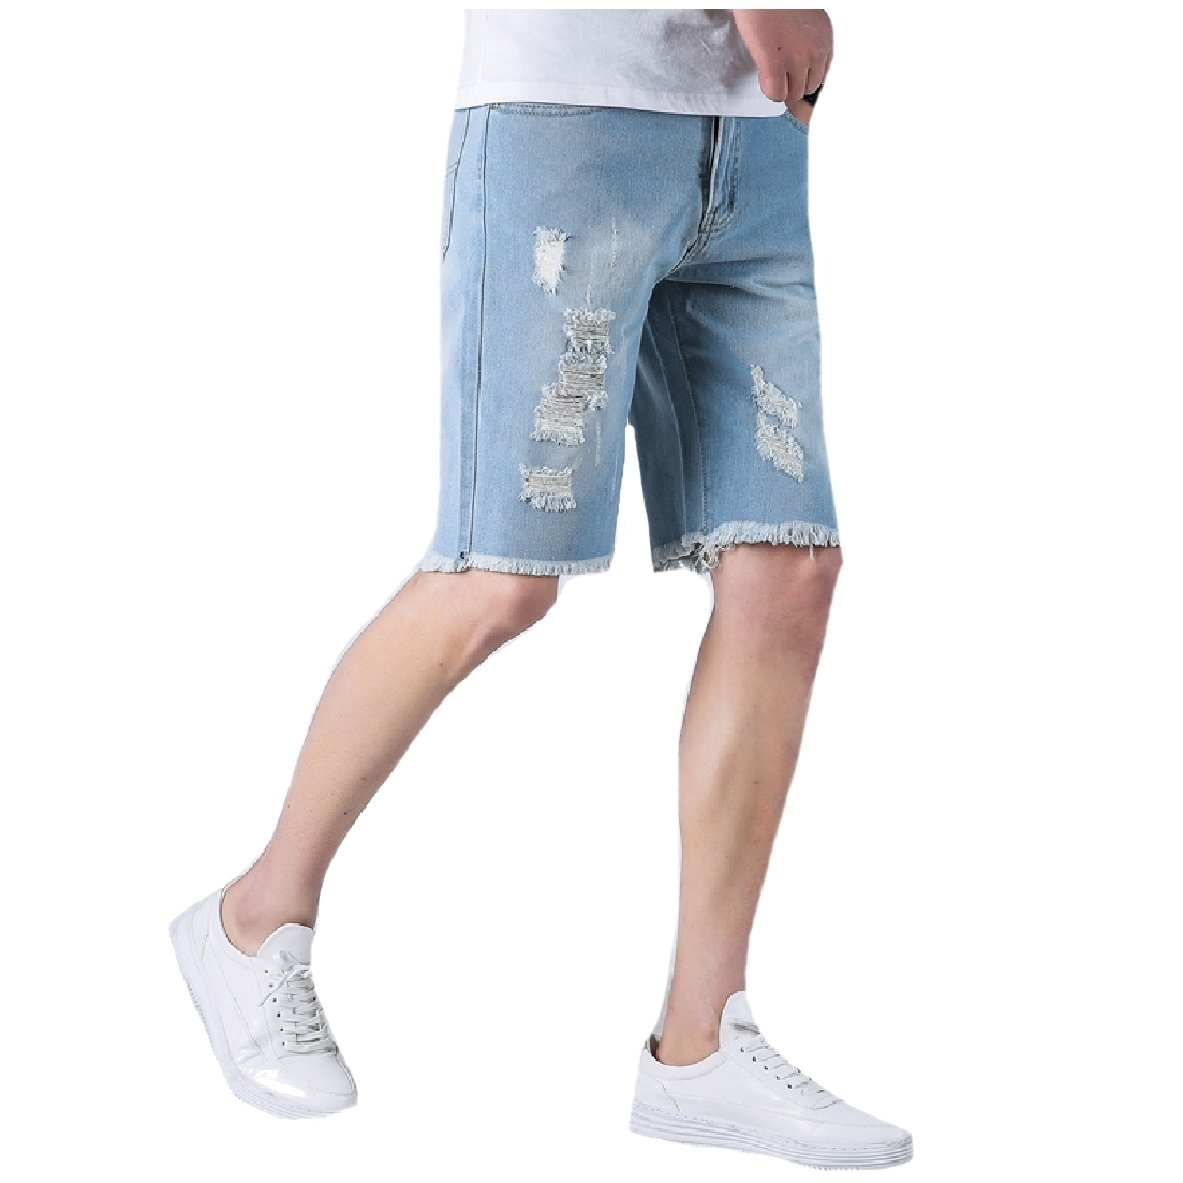 AngelSpace Men's Jeans Ripped Raw Hem Denim Pants Straight-Fit Midi Shorts Light Blue 32